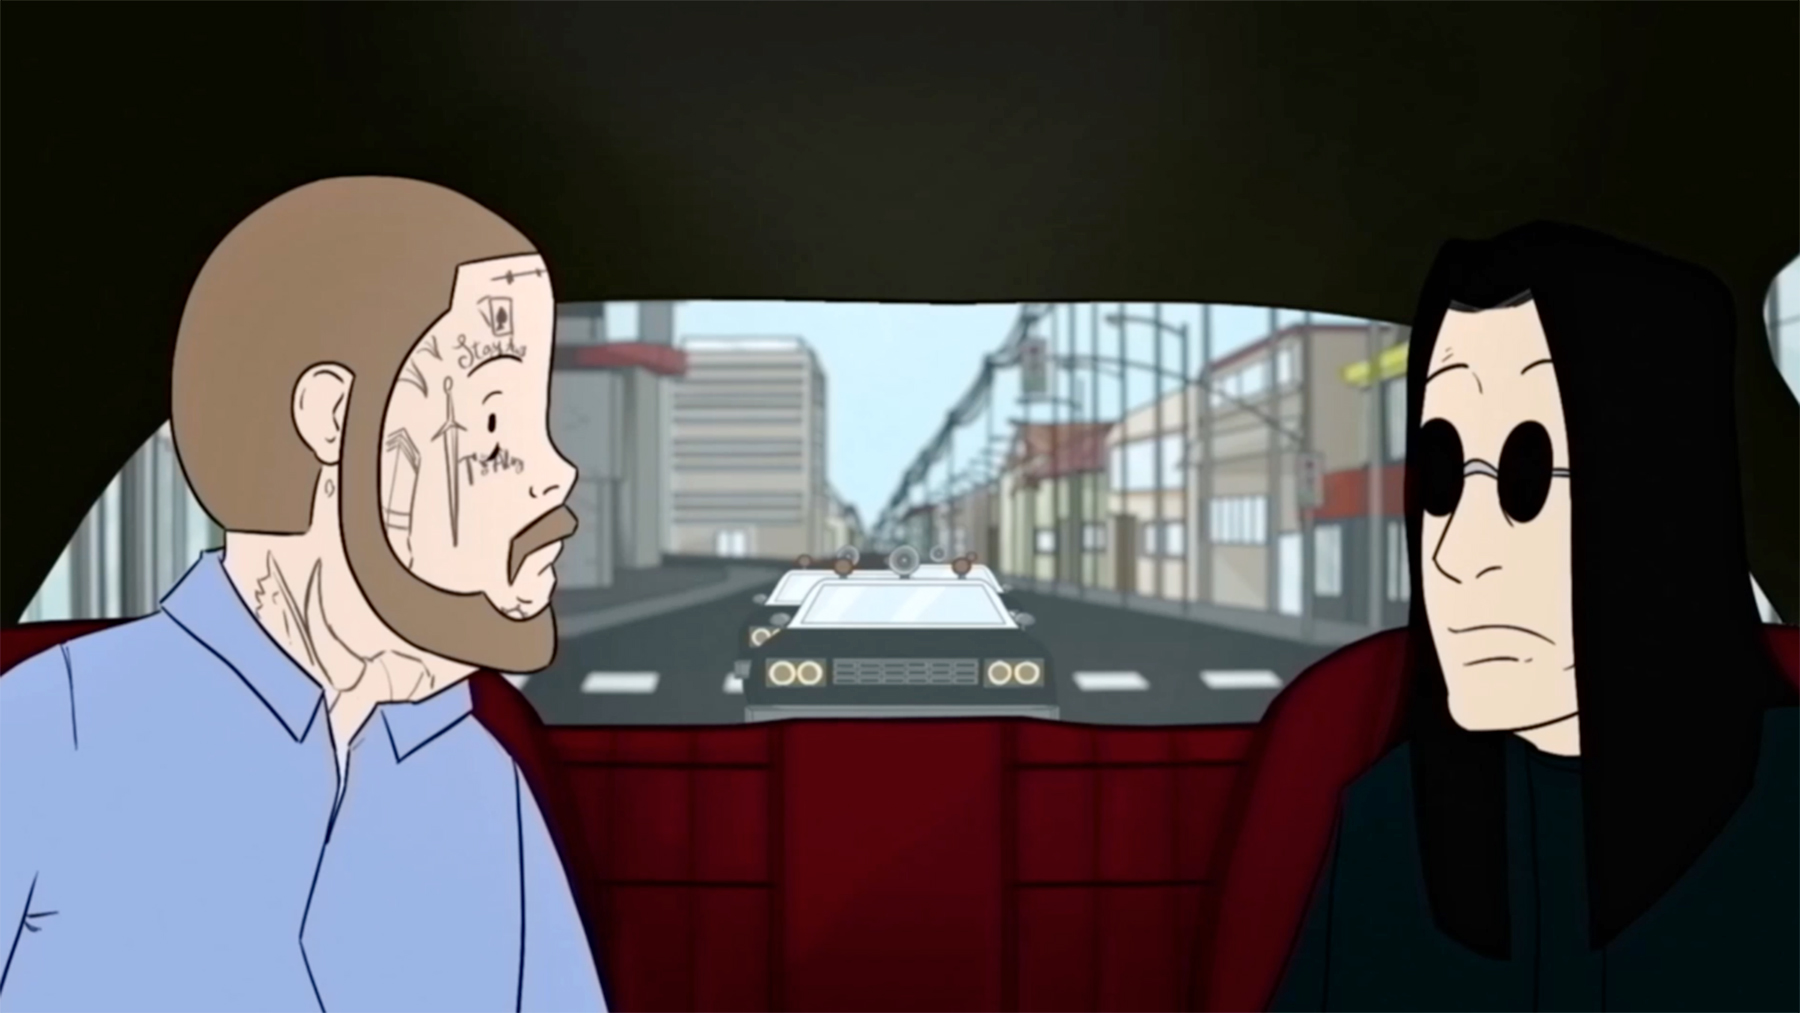 See Ozzy Osbourne and Post Malone Dodge the Cops in Cartoon 'It's a Raid' Video - Rolling Stone